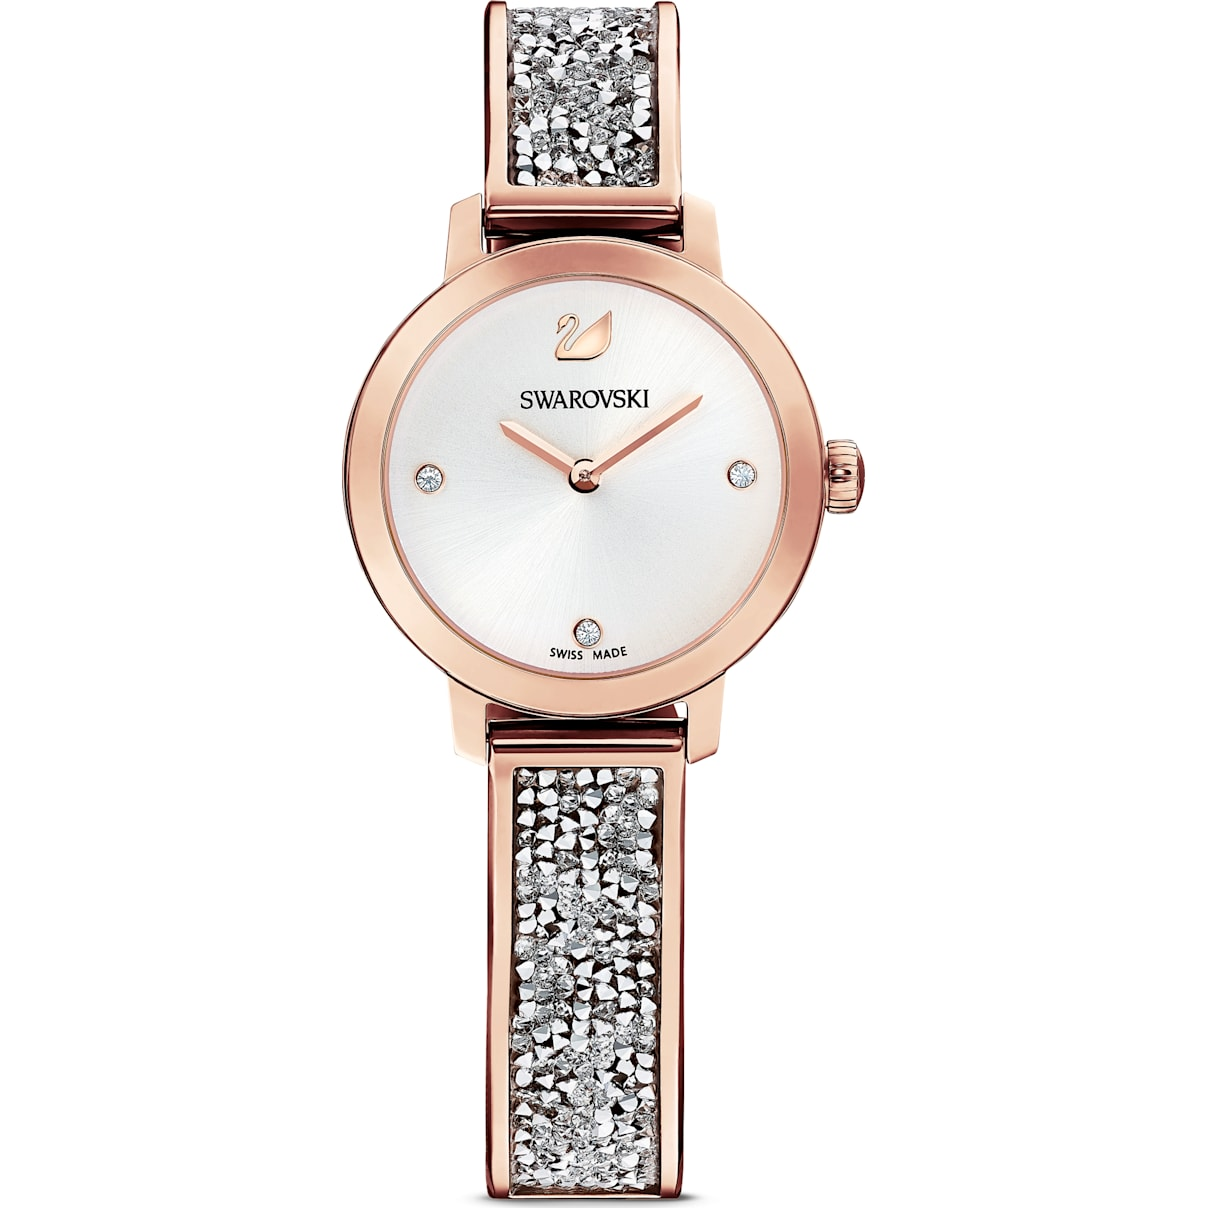 Swarovski Cosmic Rock Watch, Metal bracelet, Gray, Rose-gold tone PVD